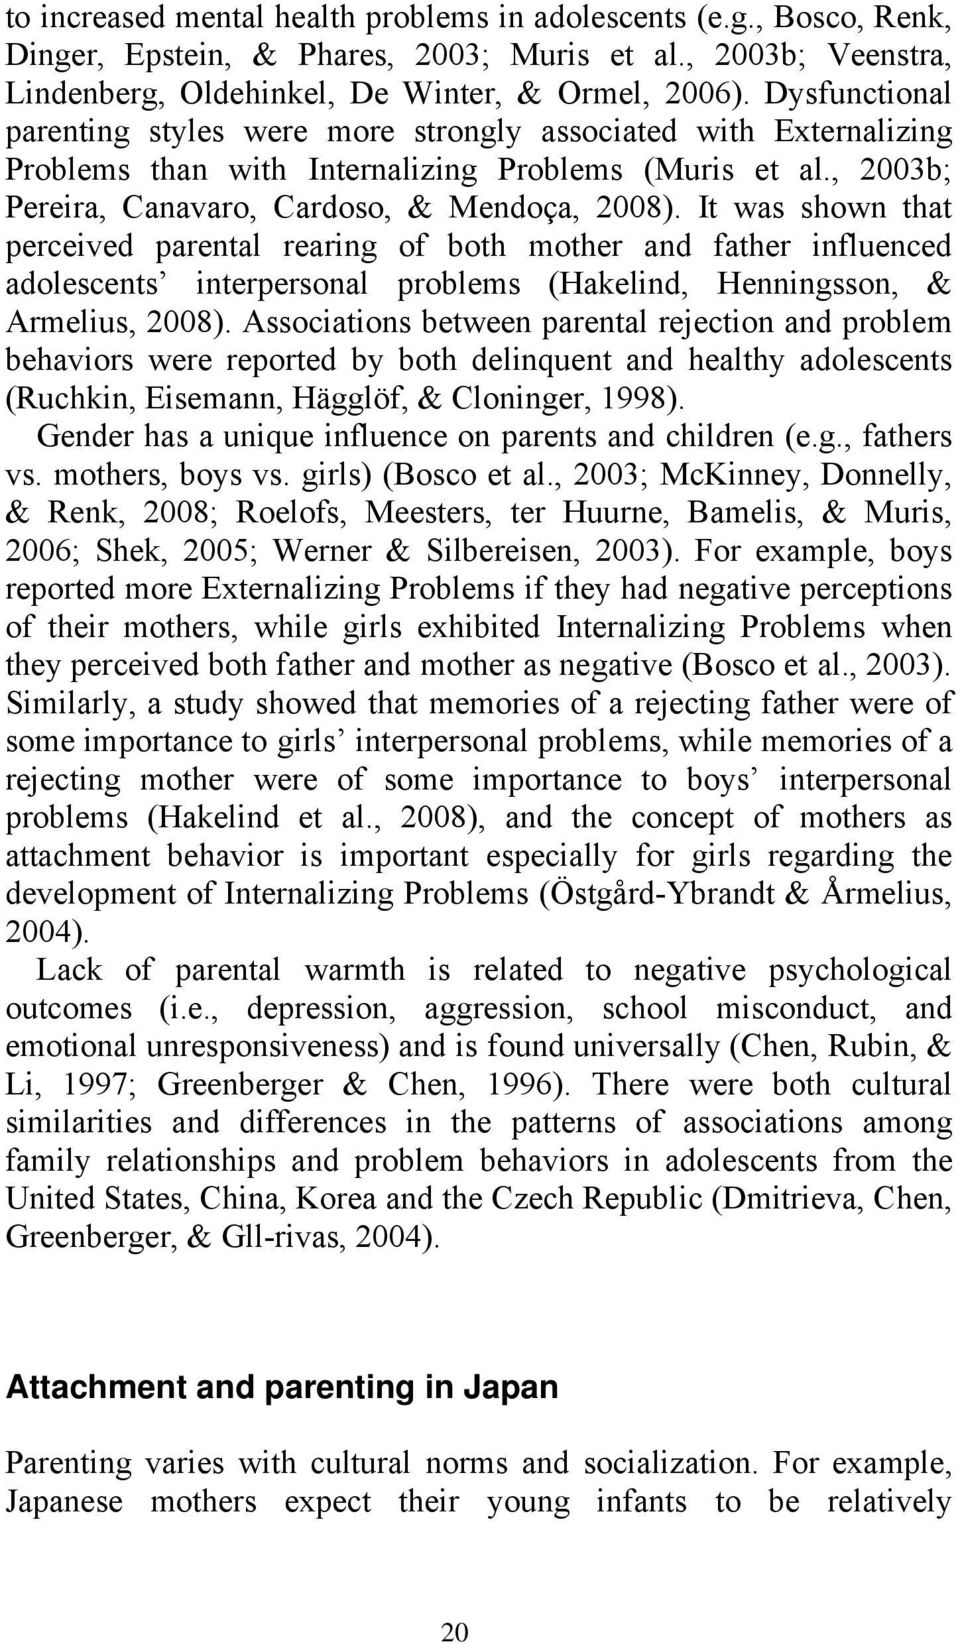 It was shown that perceived parental rearing of both mother and father influenced adolescents interpersonal problems (Hakelind, Henningsson, & Armelius, 2008).